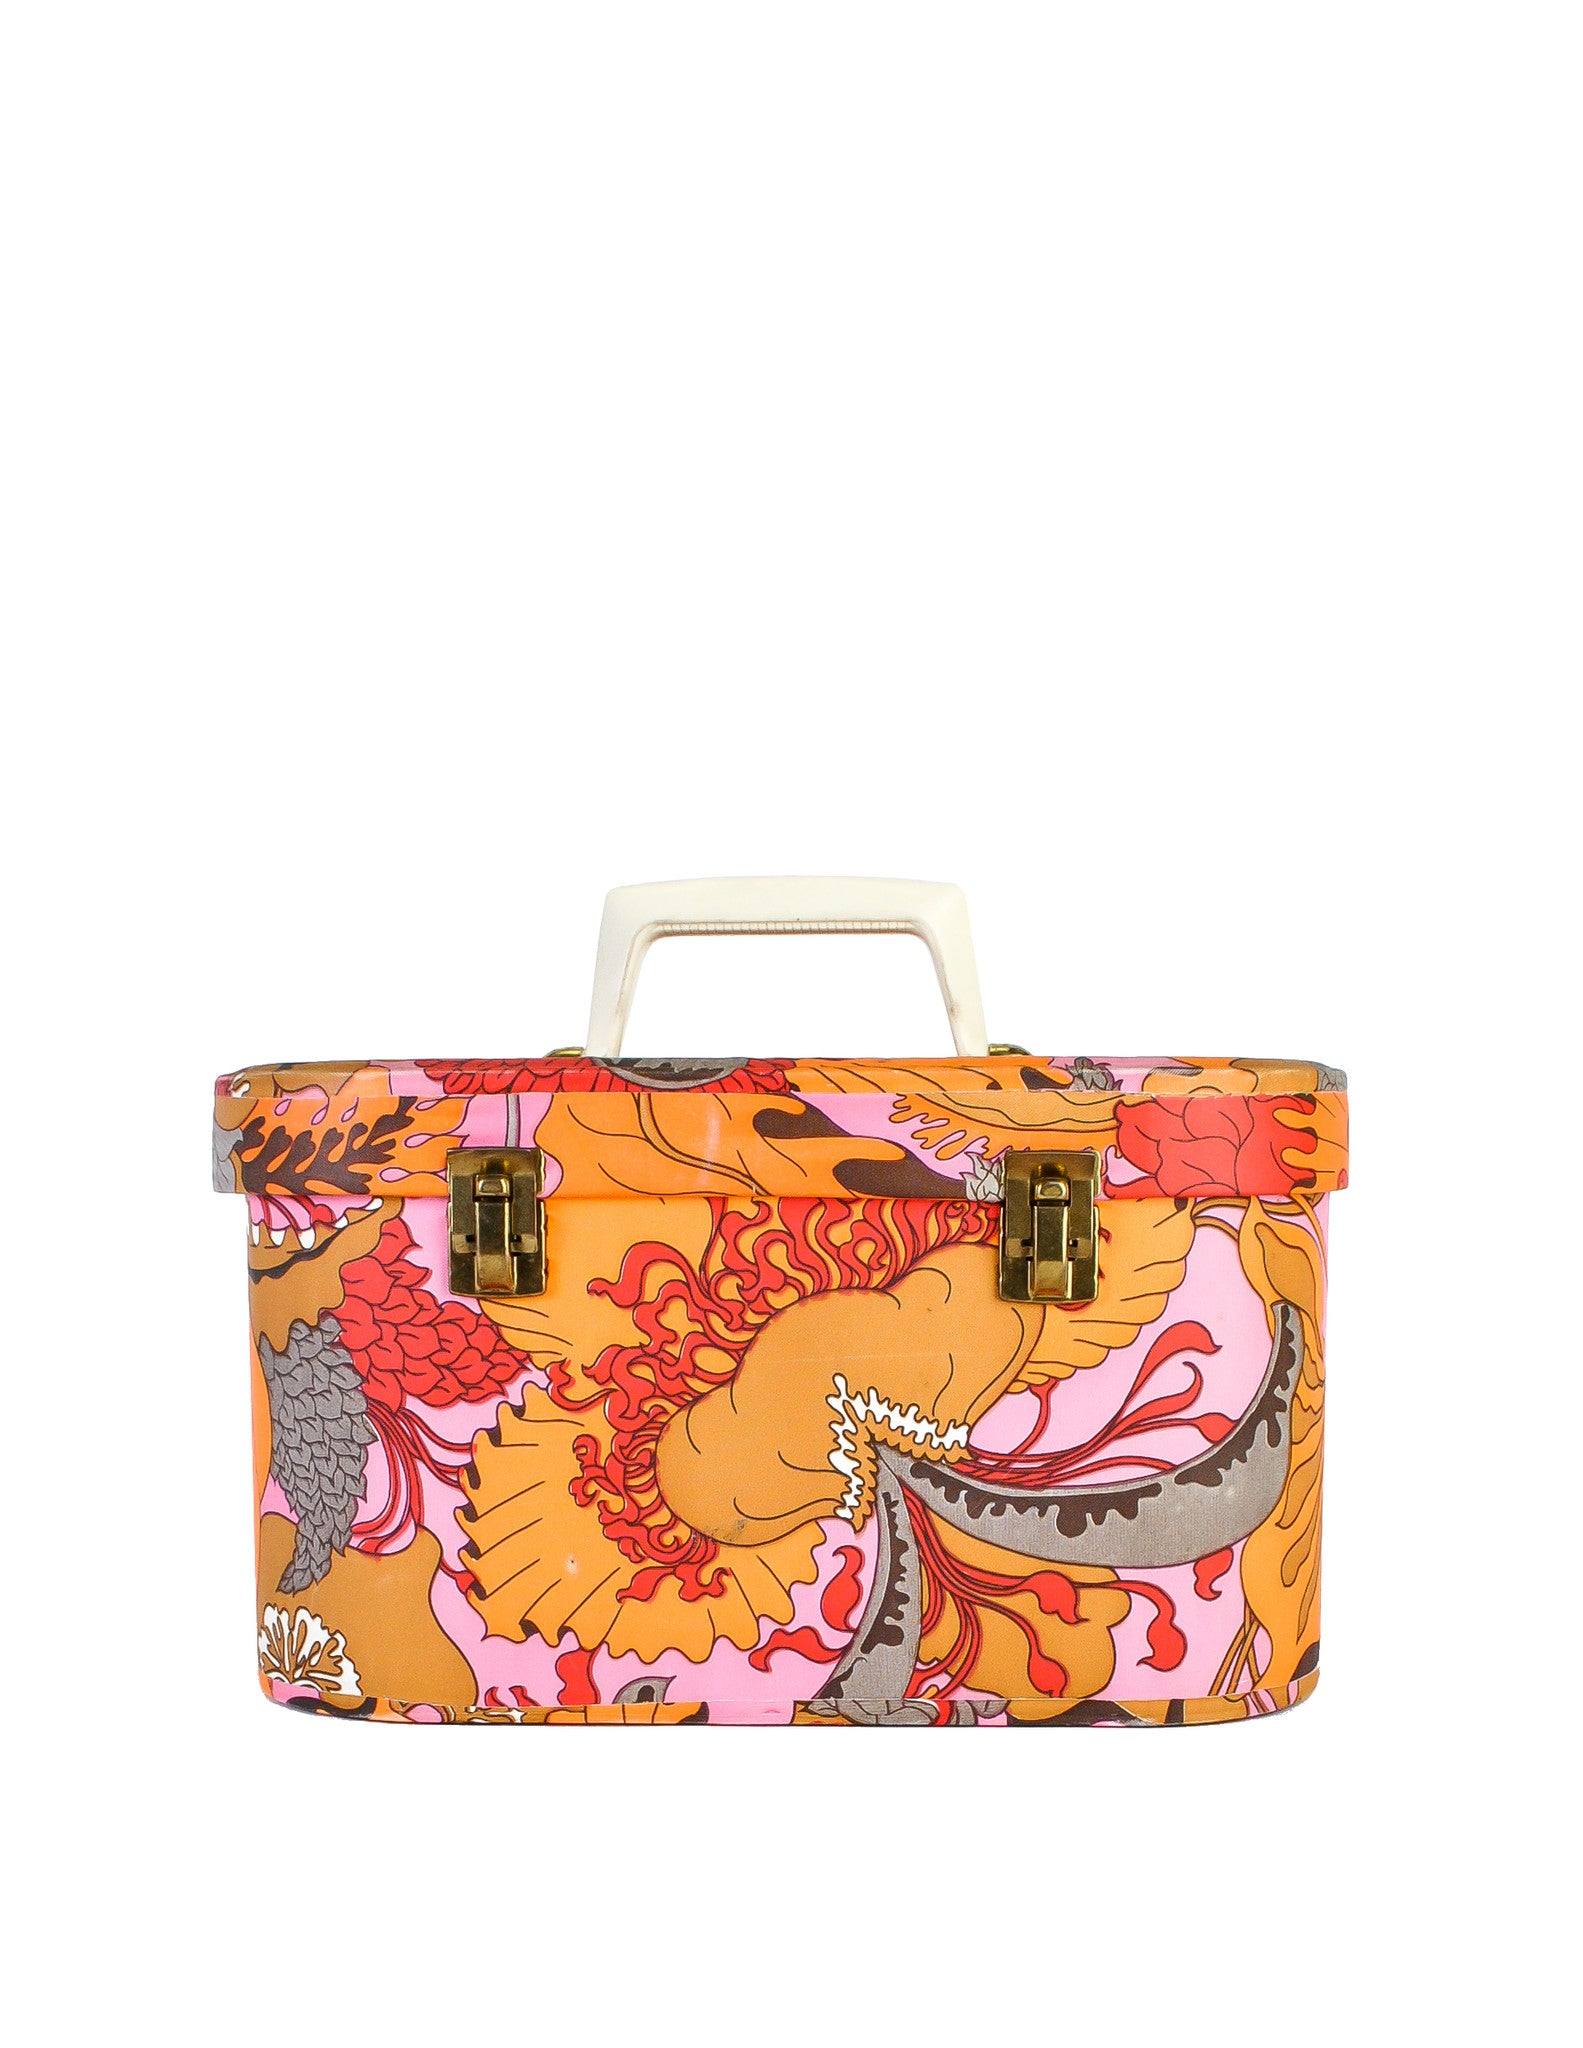 Patricia Gaile Vintage Tropical Floral Cosmetic Case - Amarcord Vintage Fashion  - 1